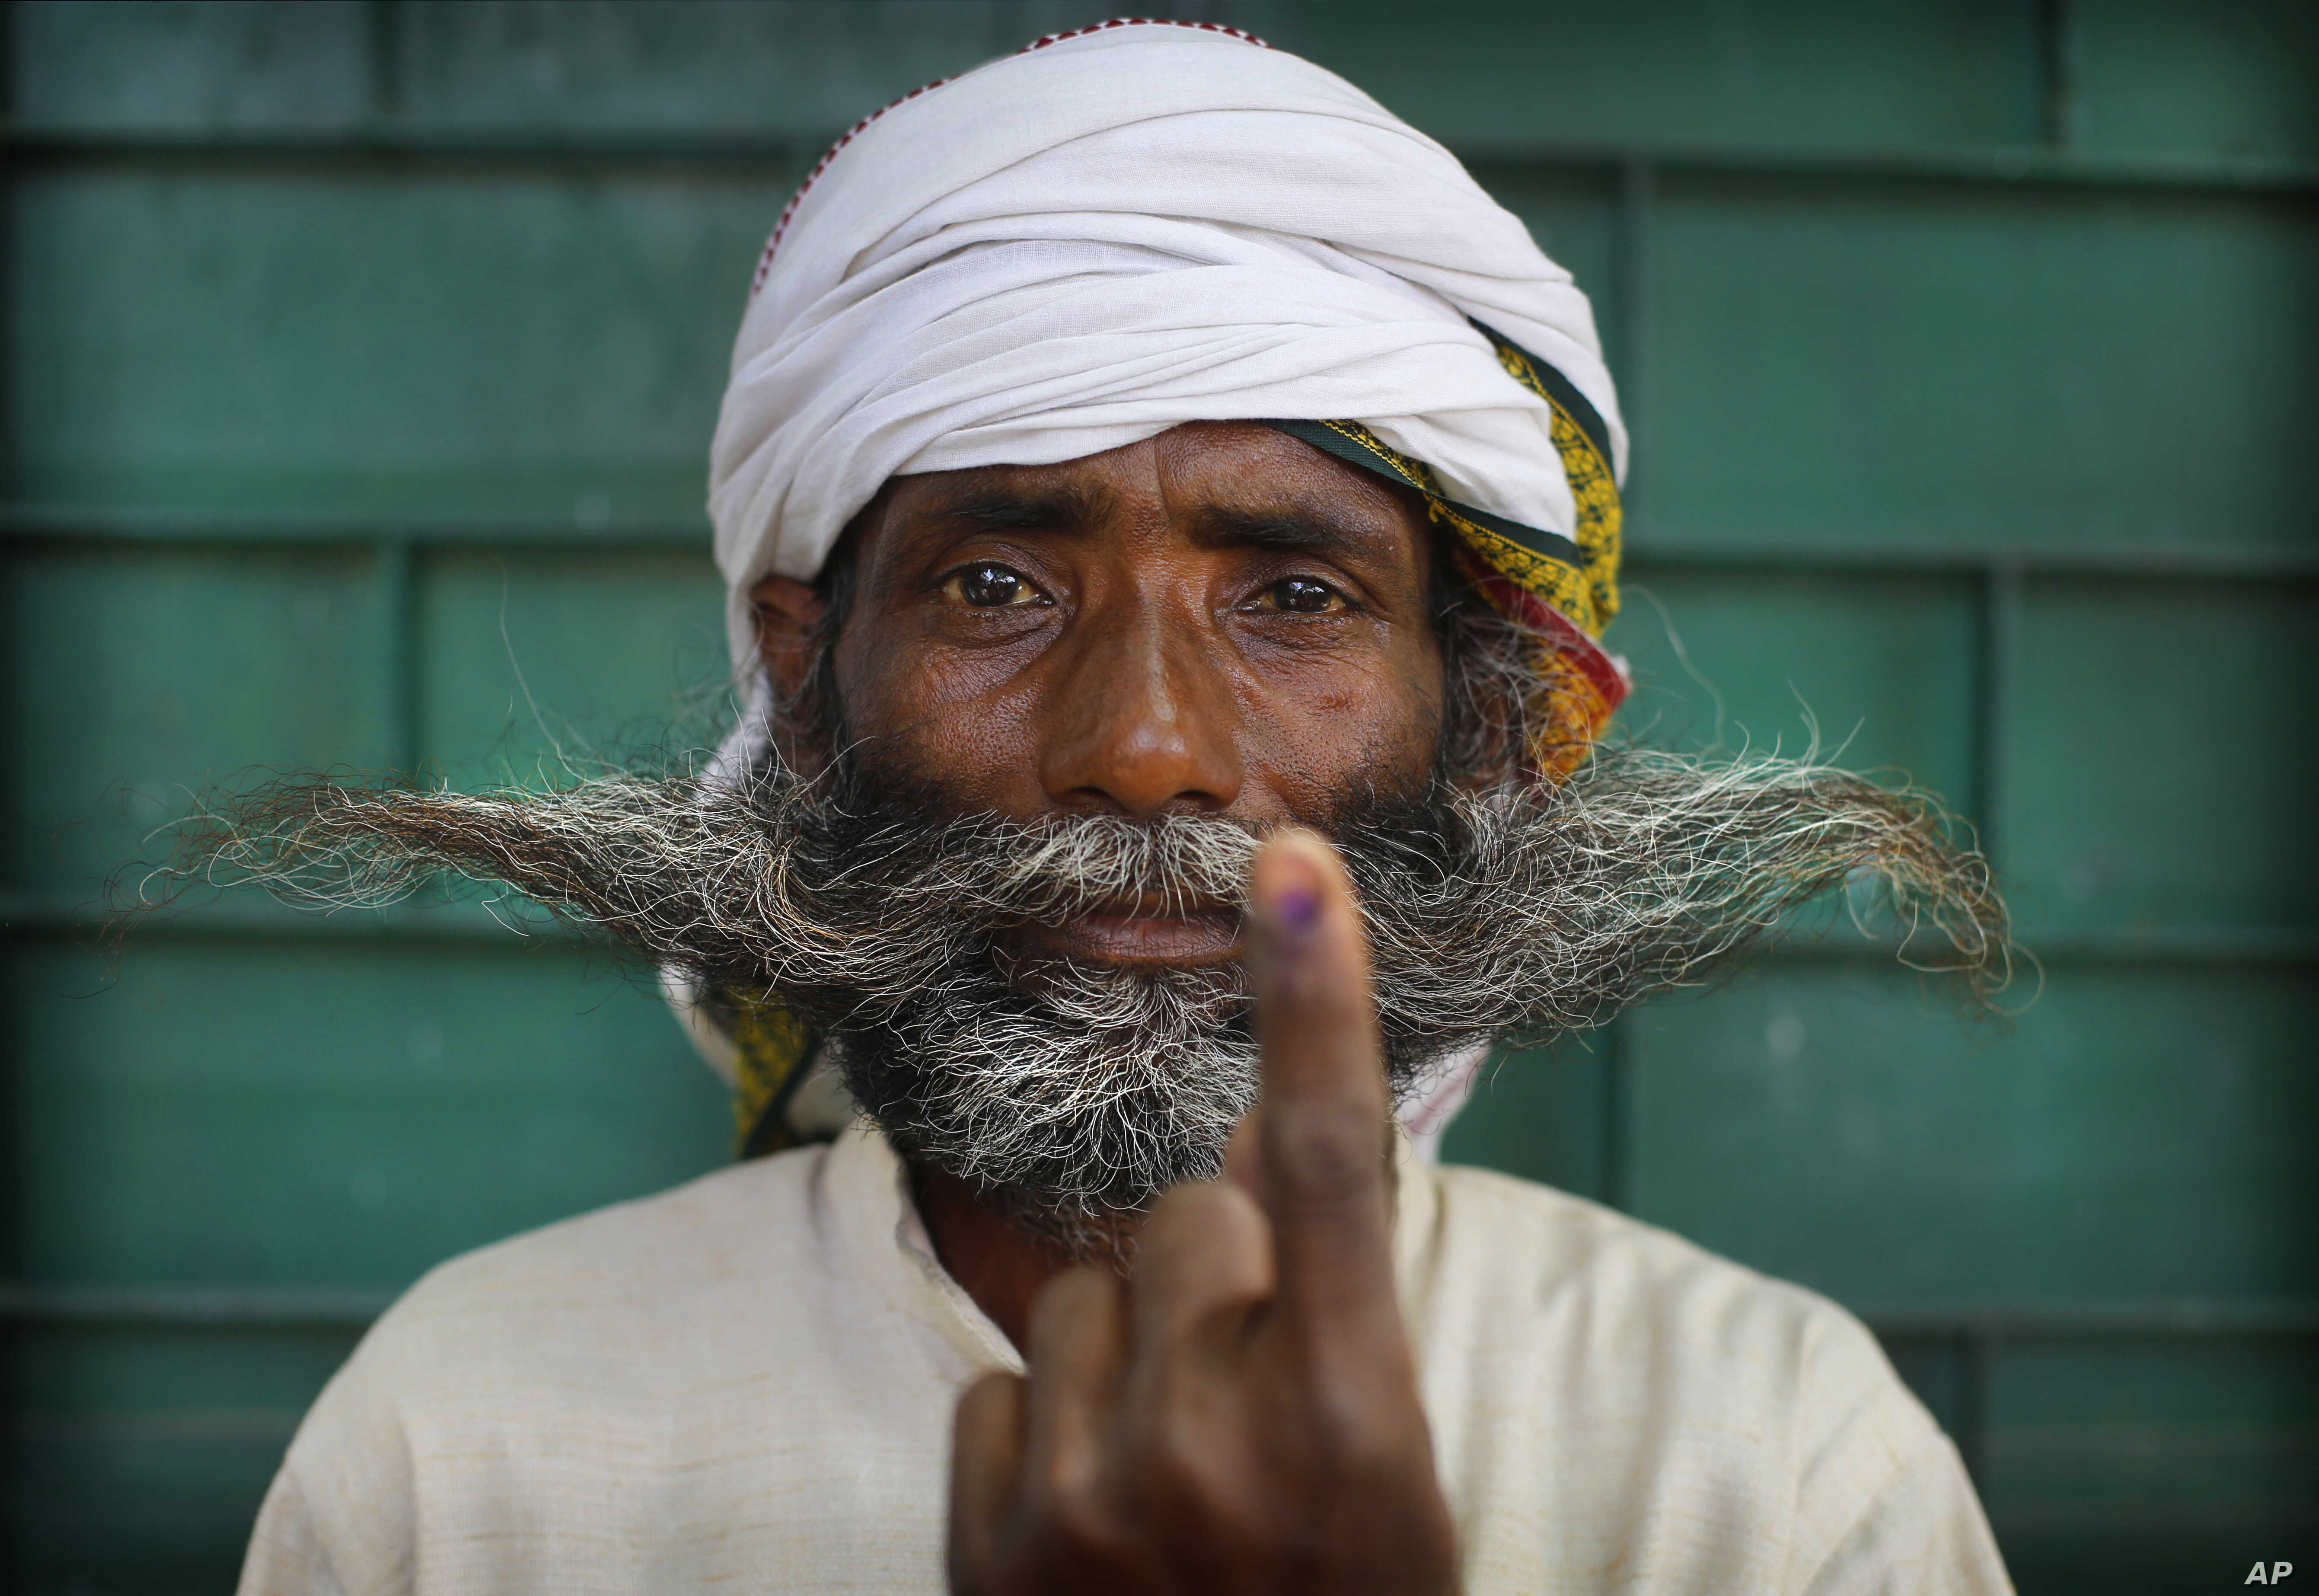 An Indian displays indelible ink mark on his index finger after casting his vote in the seventh and final phase of national elections, on the outskirts of Varanasi, India, May 19, 2019.